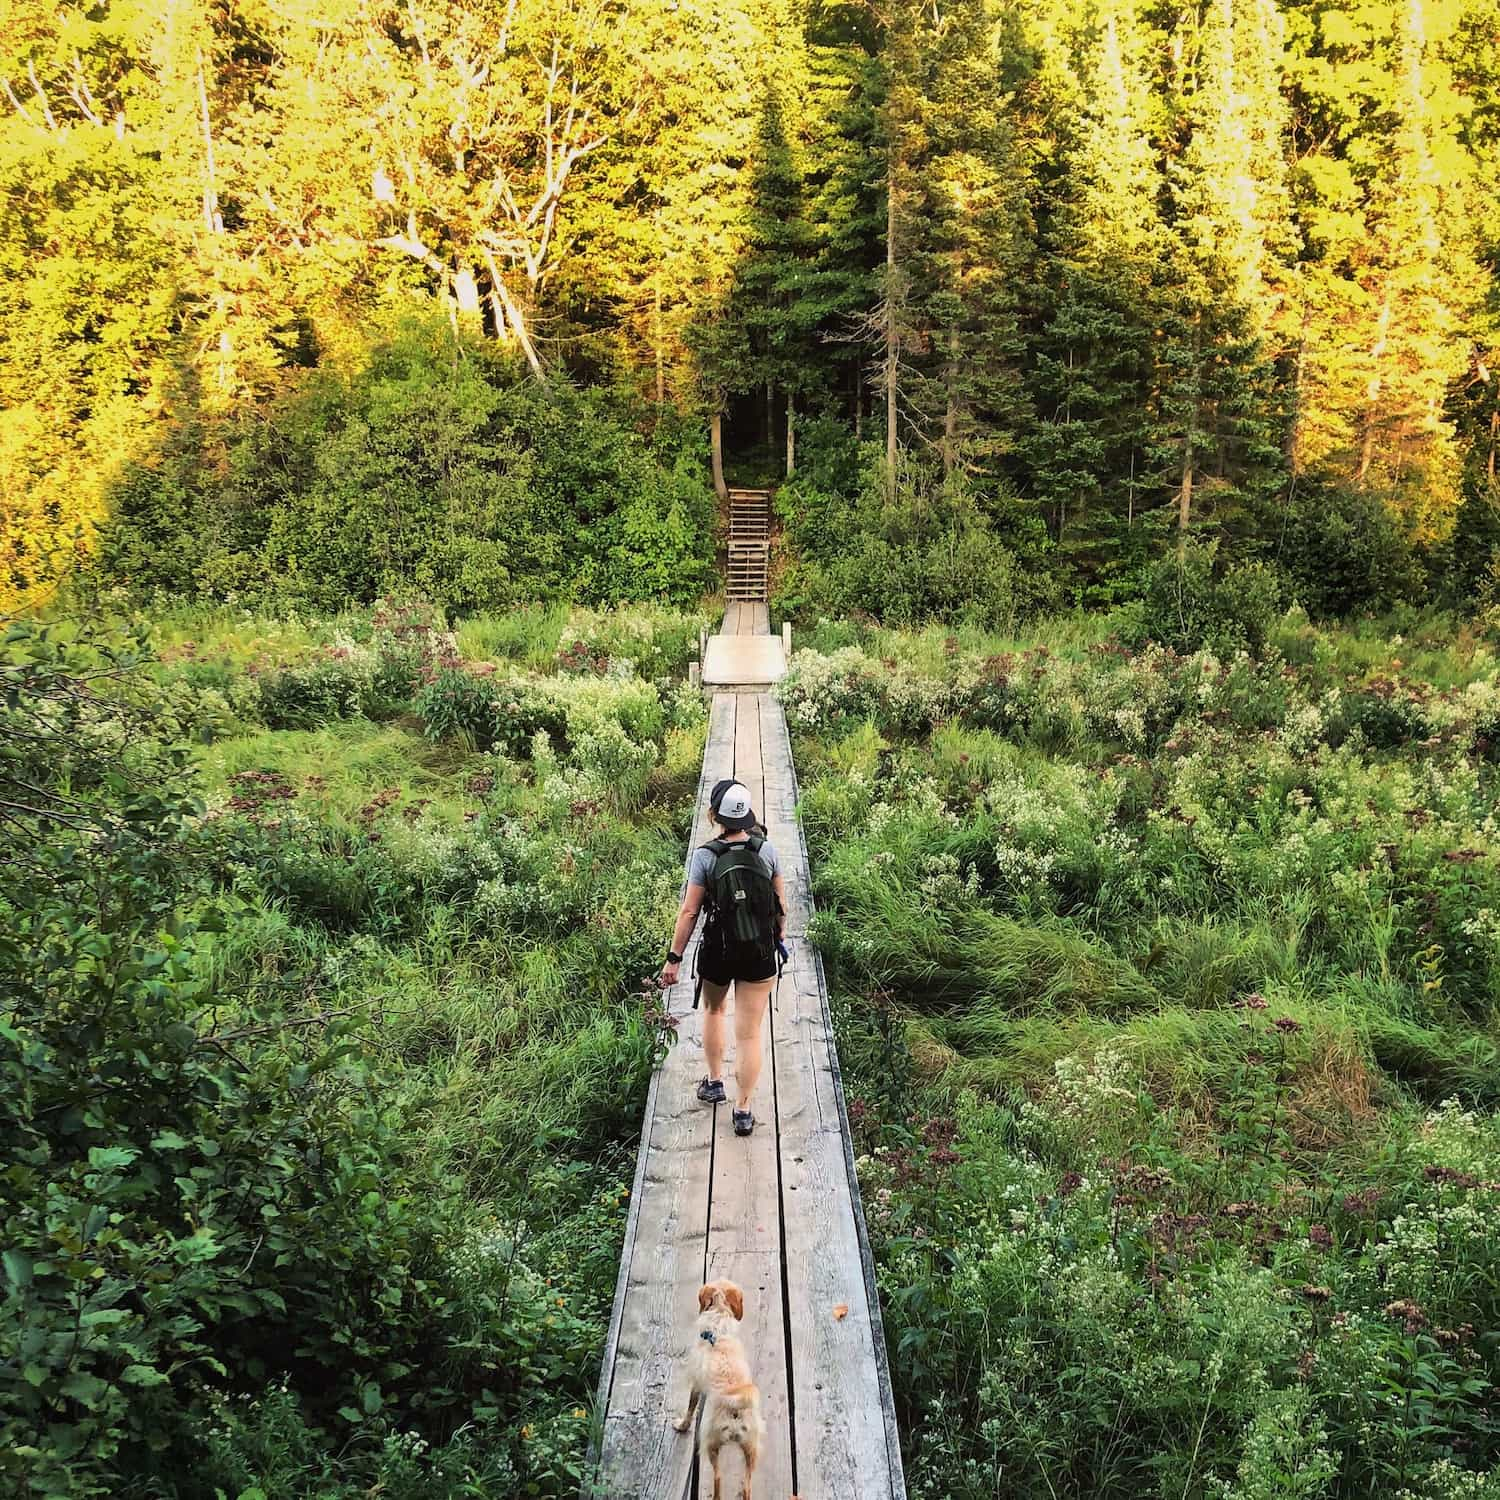 woman and dog walking on elevated trail platform